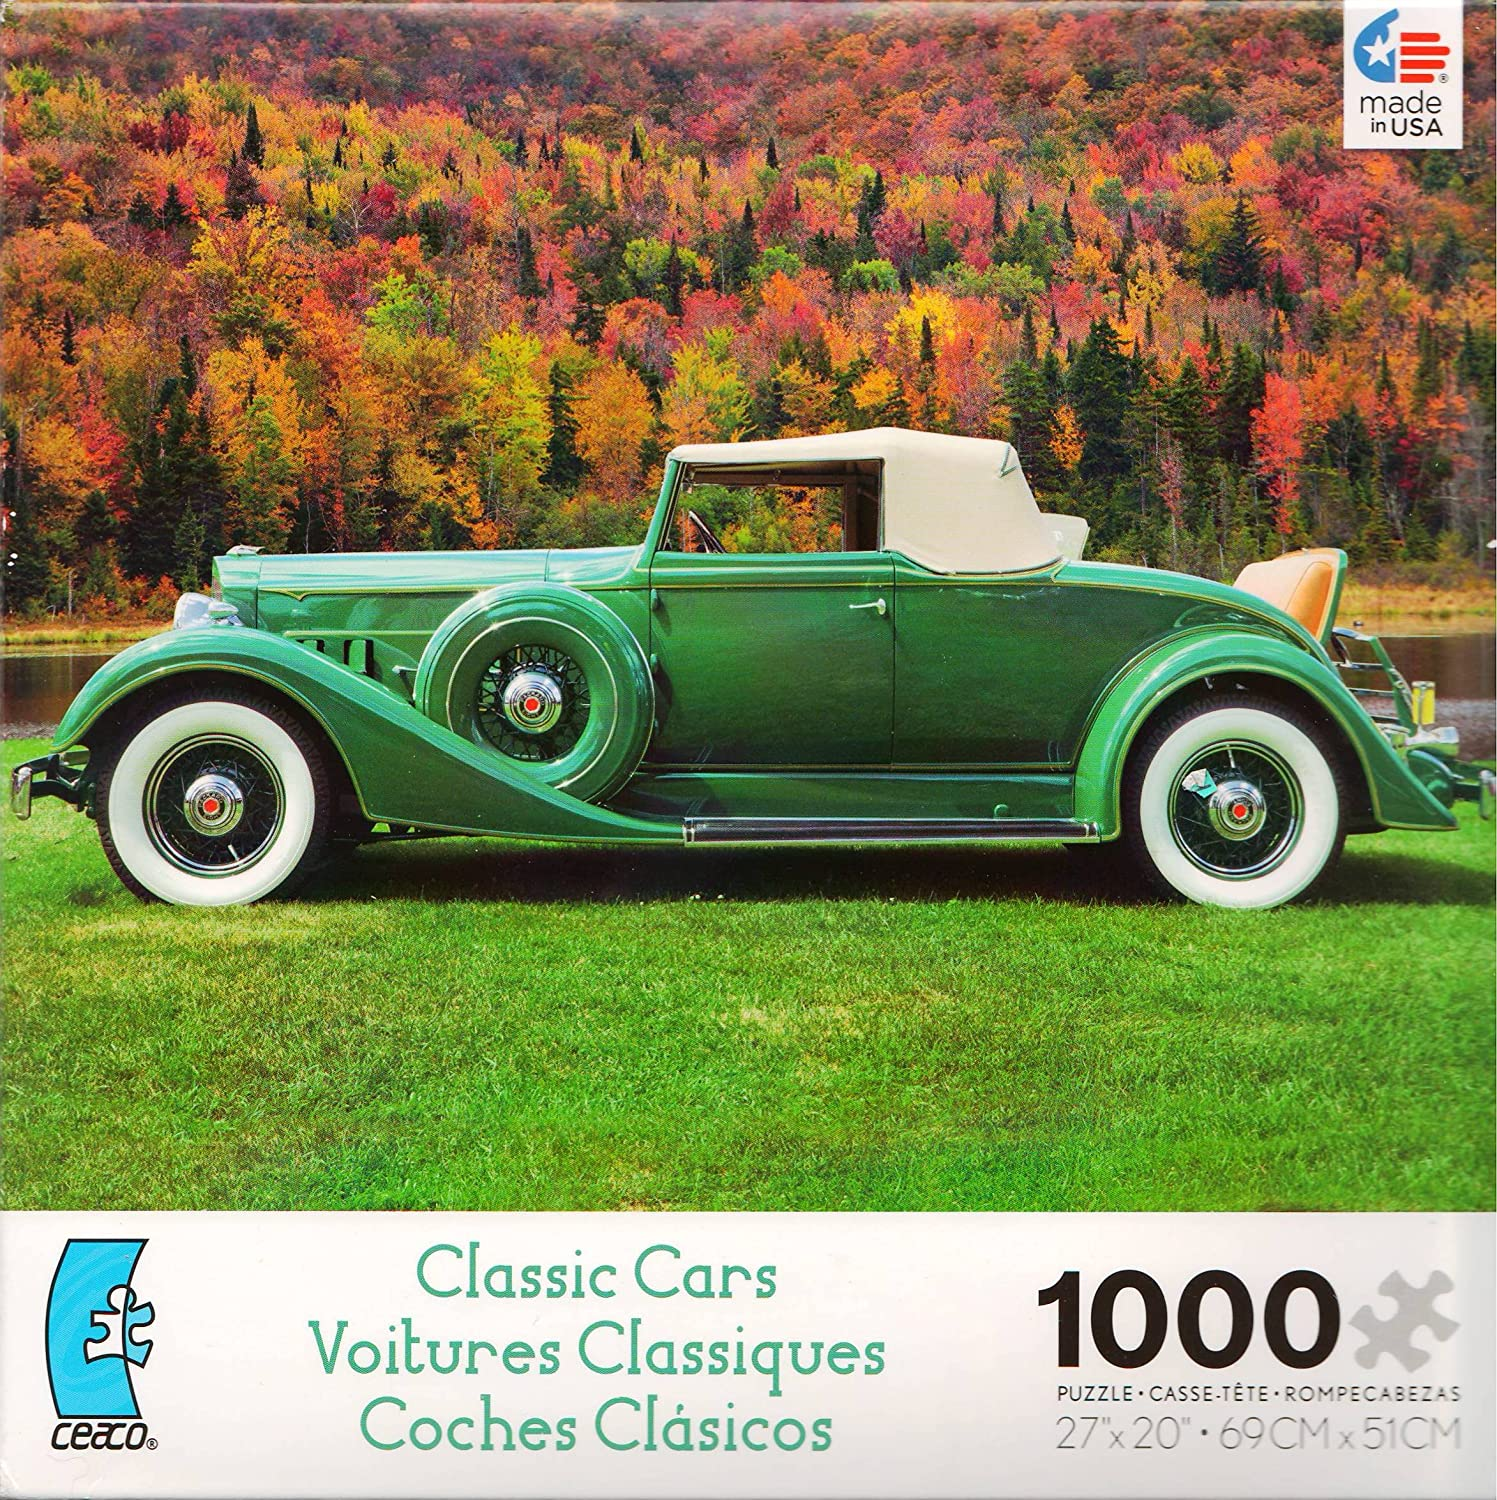 Classic Cars Green 1000 Pc Jigsaw Puzzle by Ceaco Series 3363-2